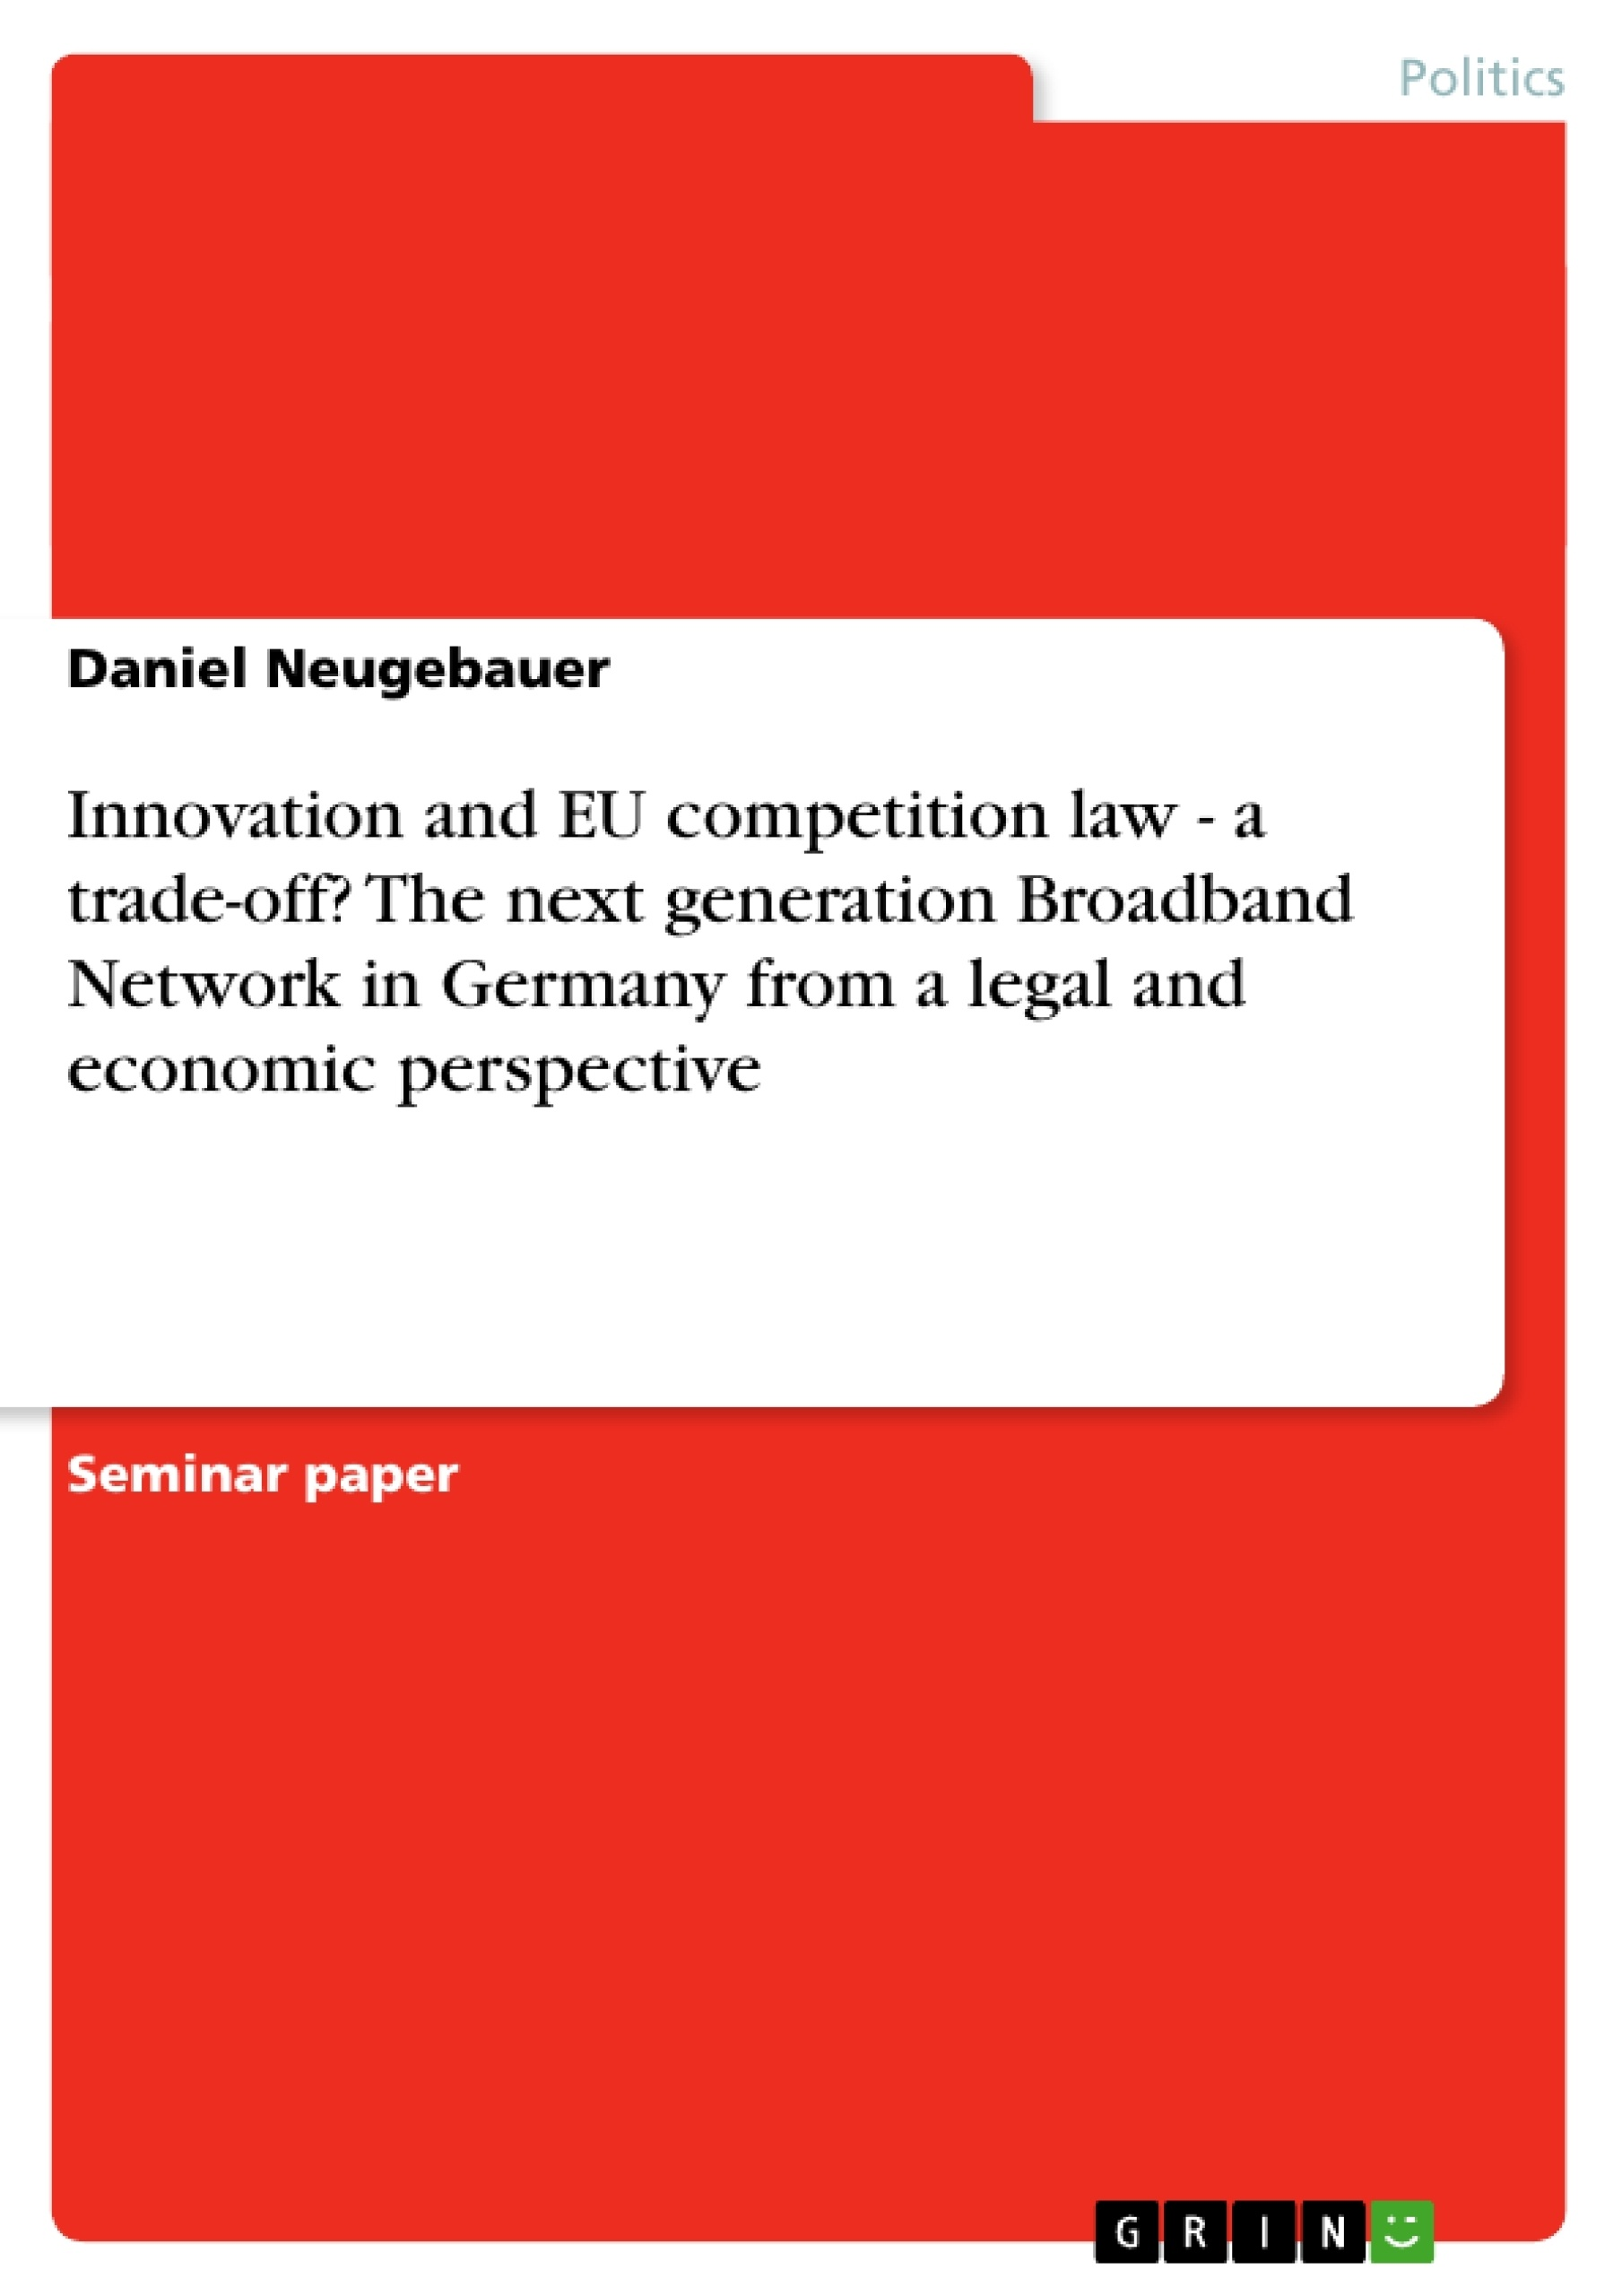 Title: Innovation and EU competition law - a trade-off? The next generation Broadband Network in Germany from a legal and economic perspective